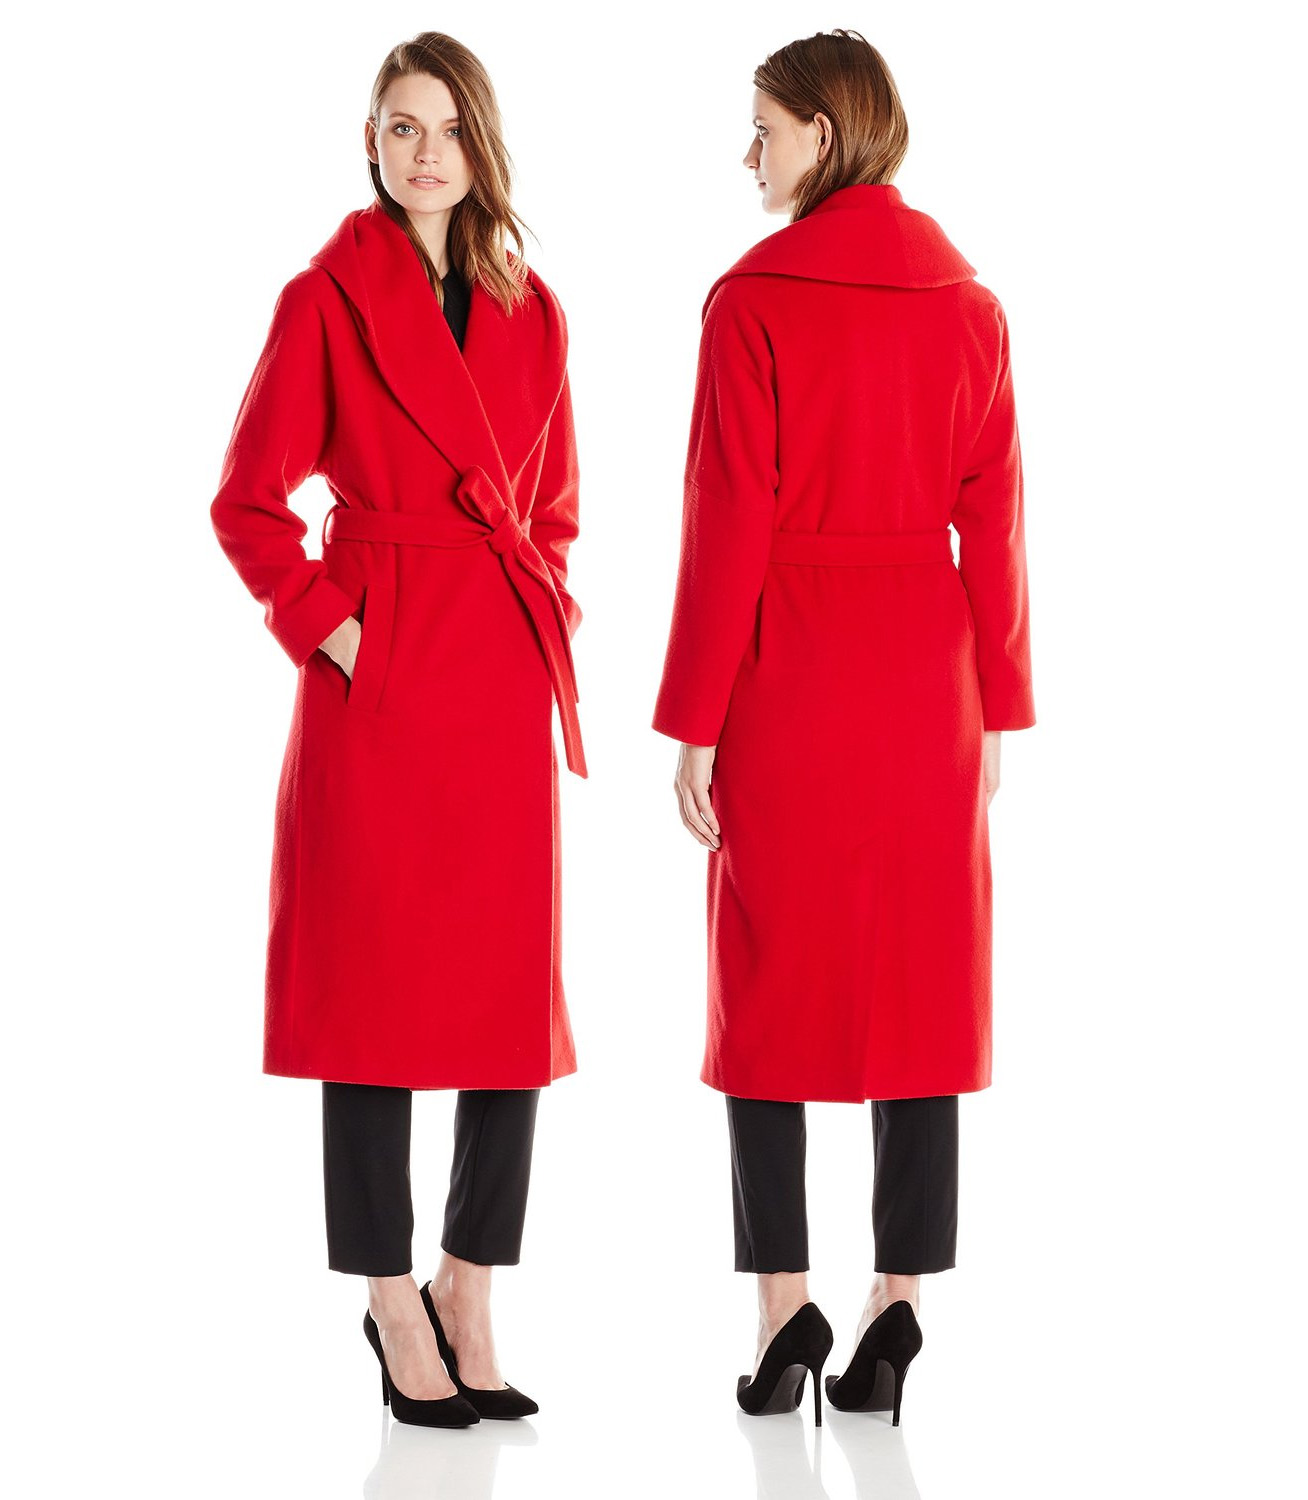 Helene Berman Womens Shawl-Collar Long Wrap Coat red trench coat winter